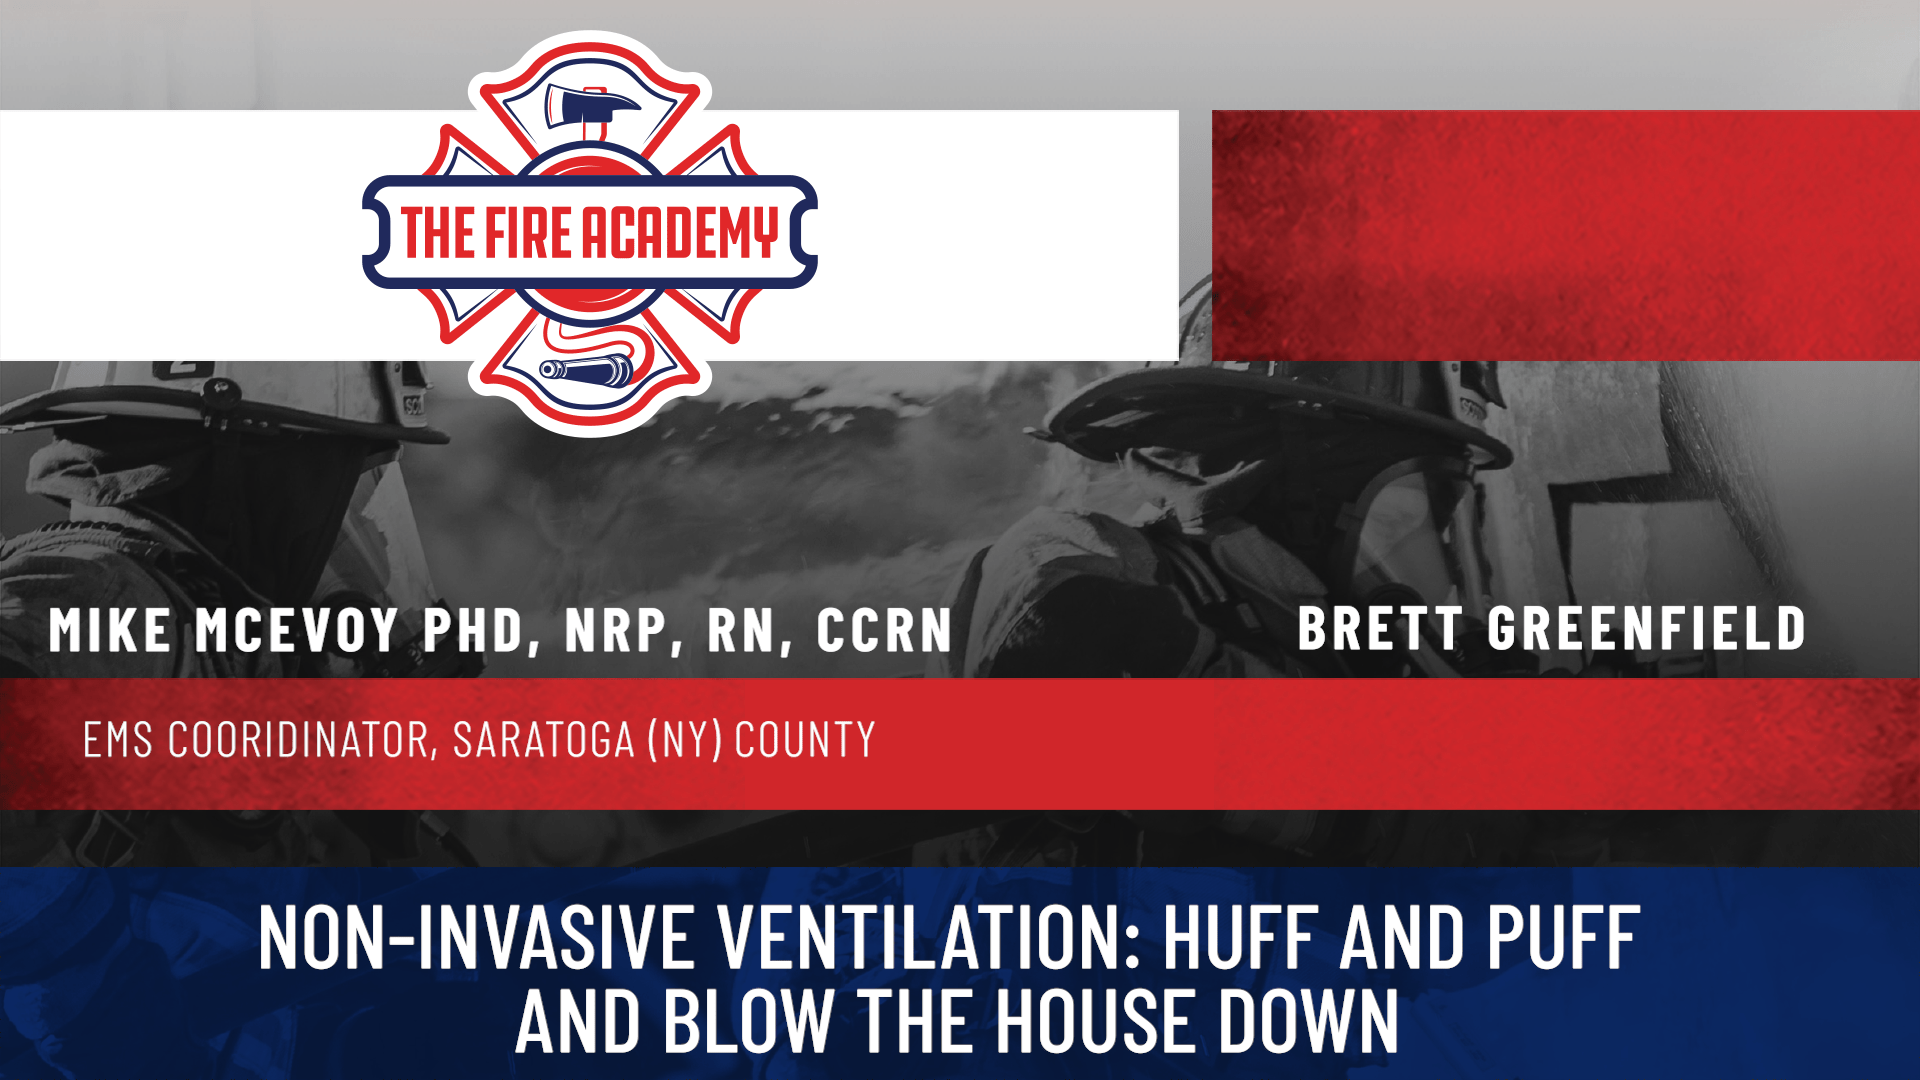 Non-Invasive Ventilation: Huff and Puff and Blow the House Down